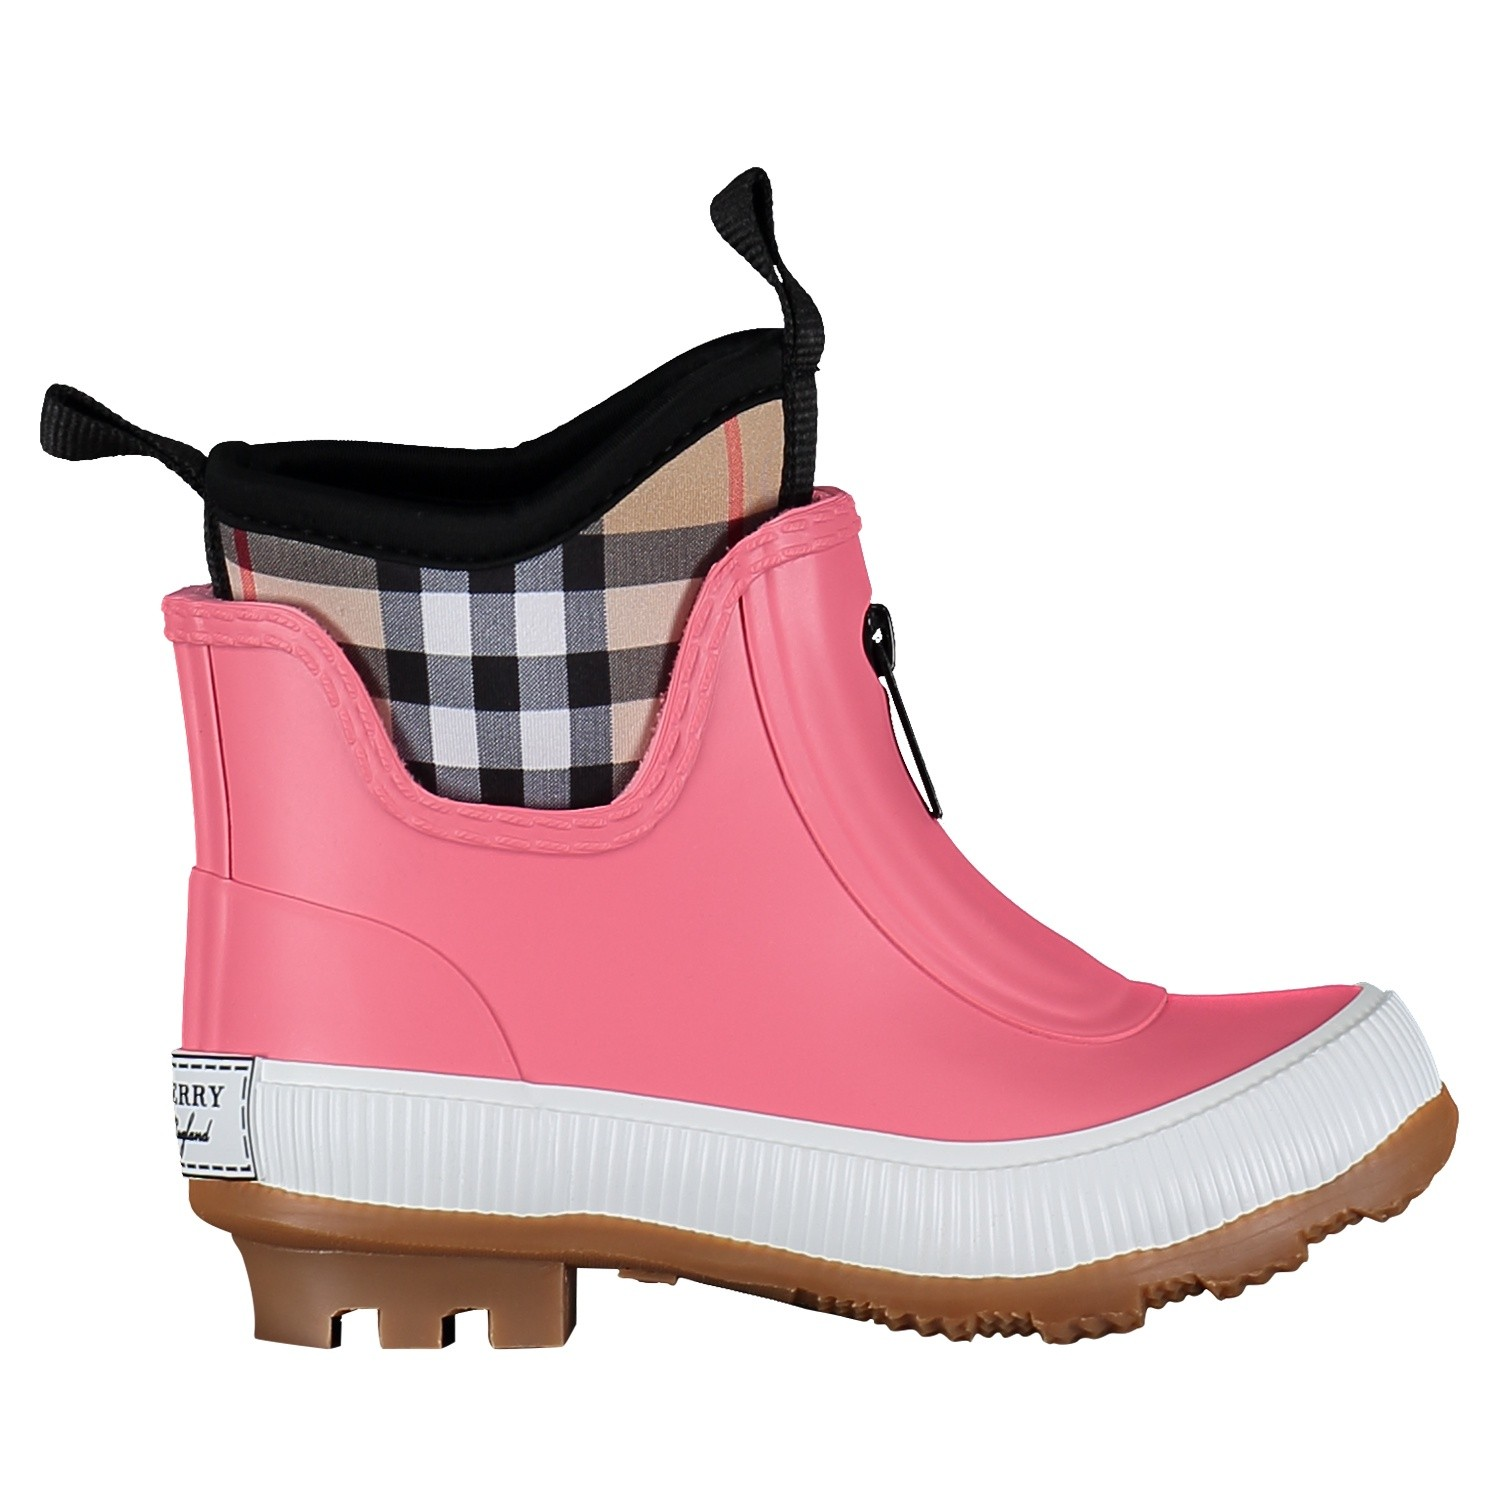 Picture of Burberry 4075997 kids boots pink